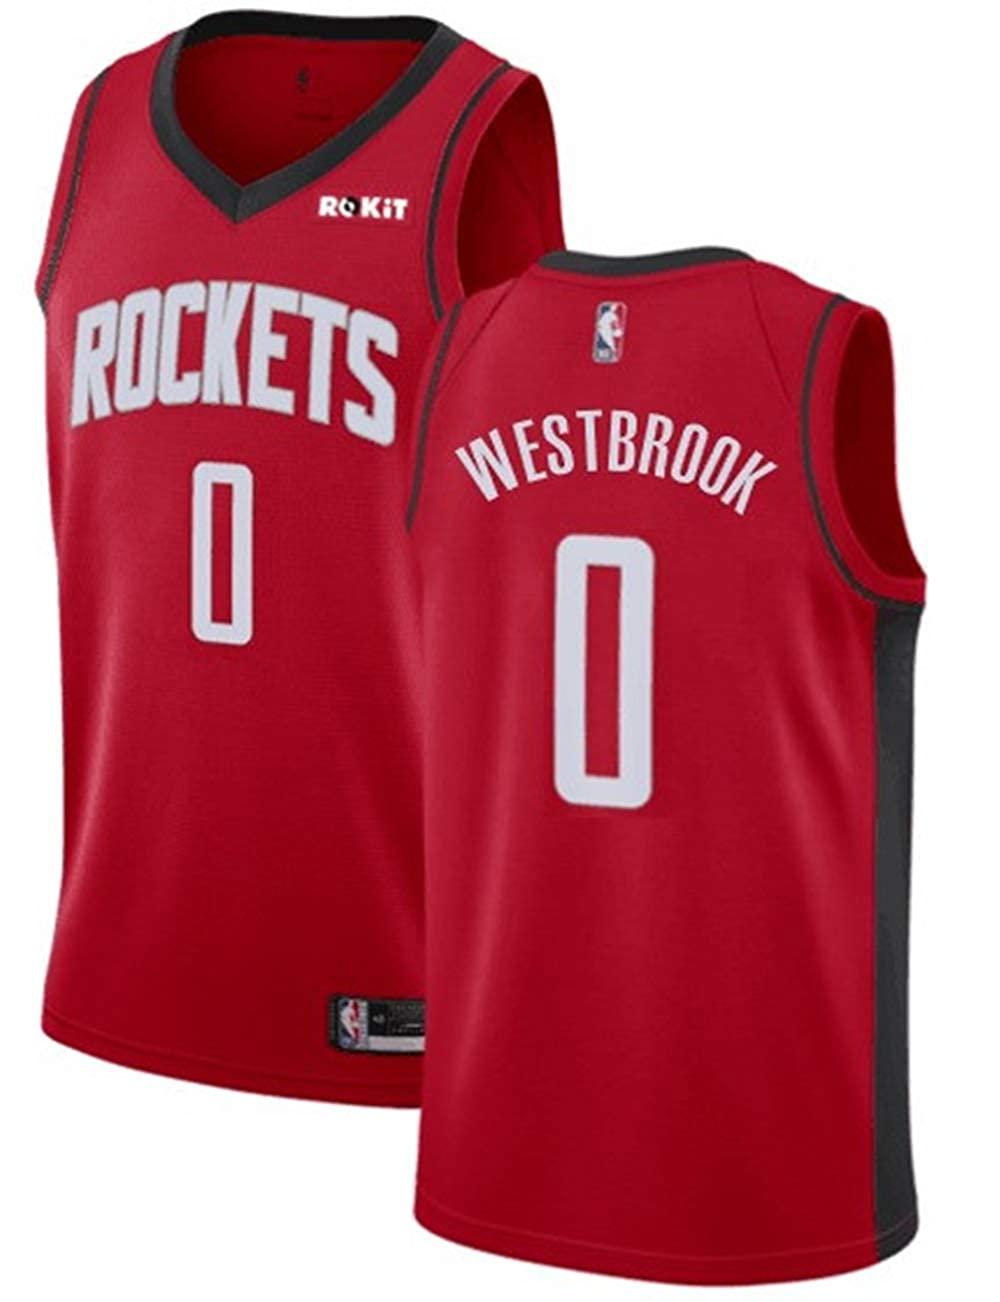 2019 New Houston Rockets #0 Russell Westbrook Jersey Red